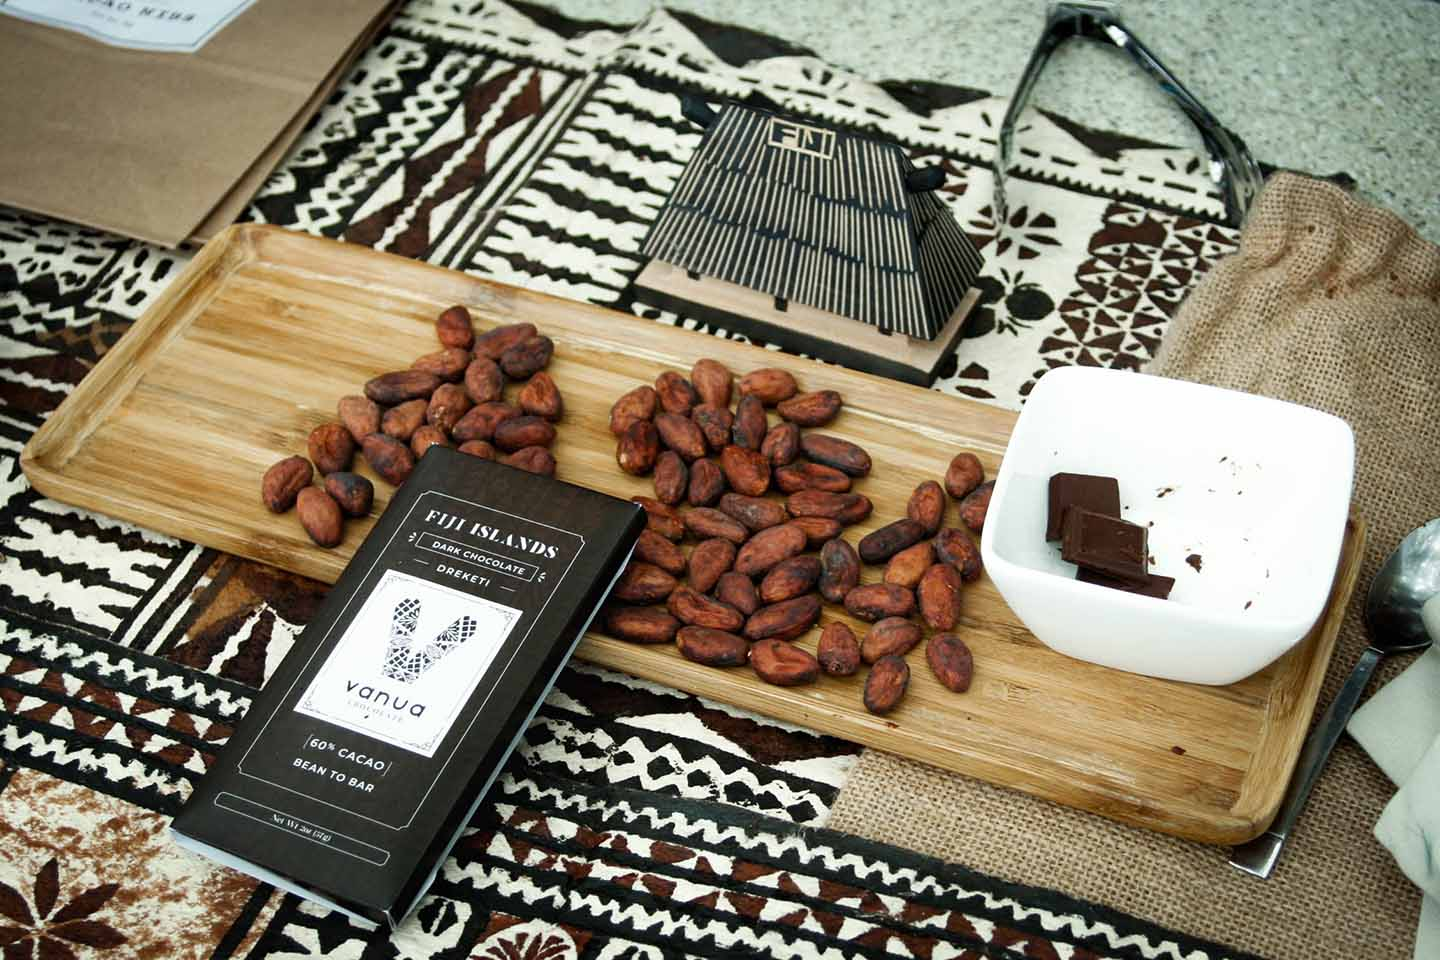 Vanua Chocolate display at the beach market